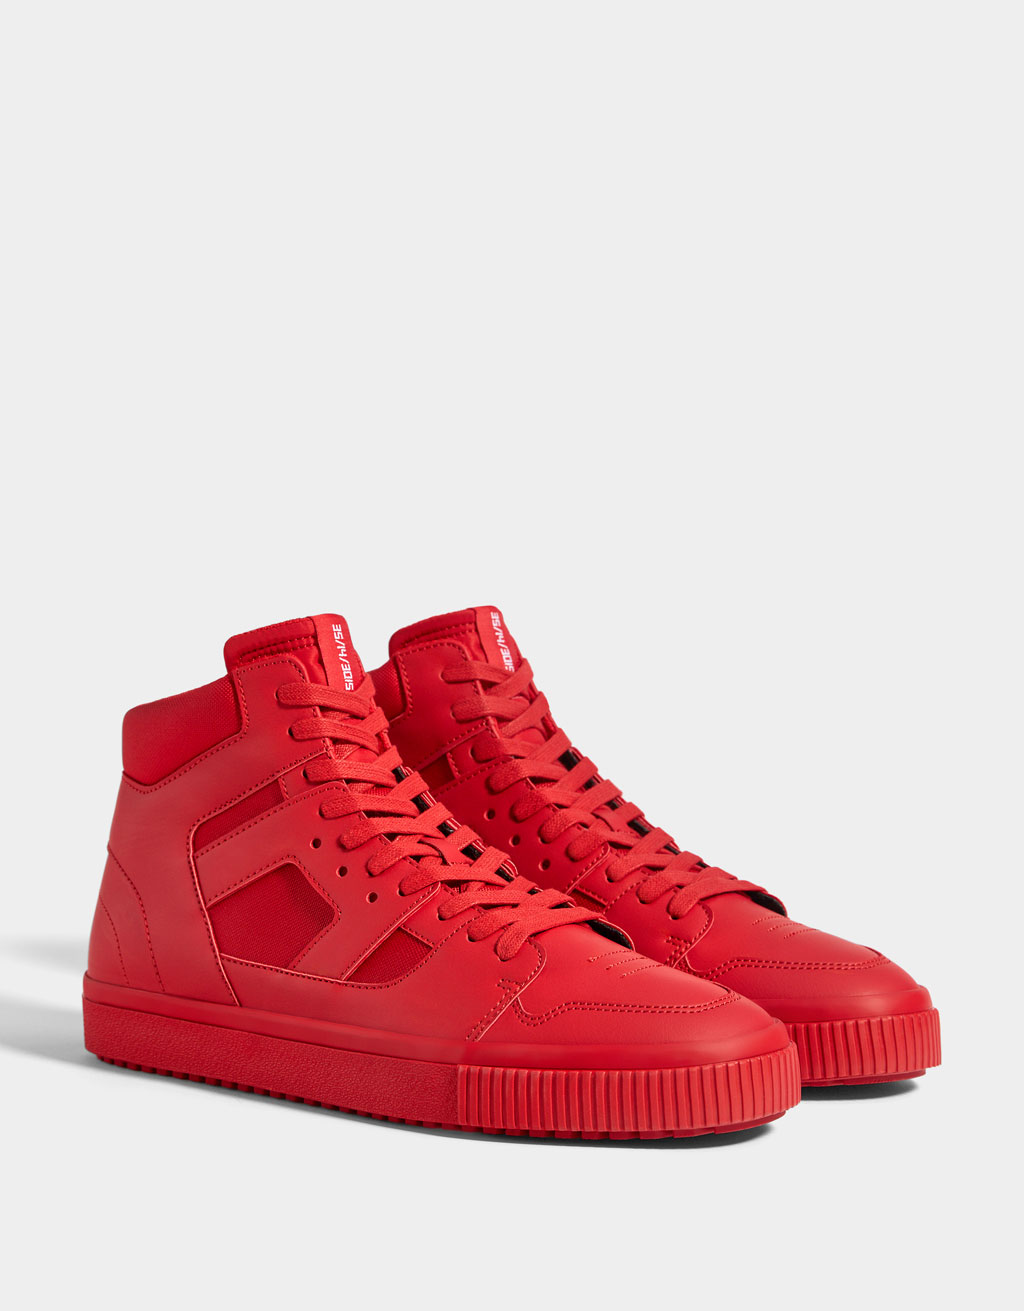 Men's red high-top trainers